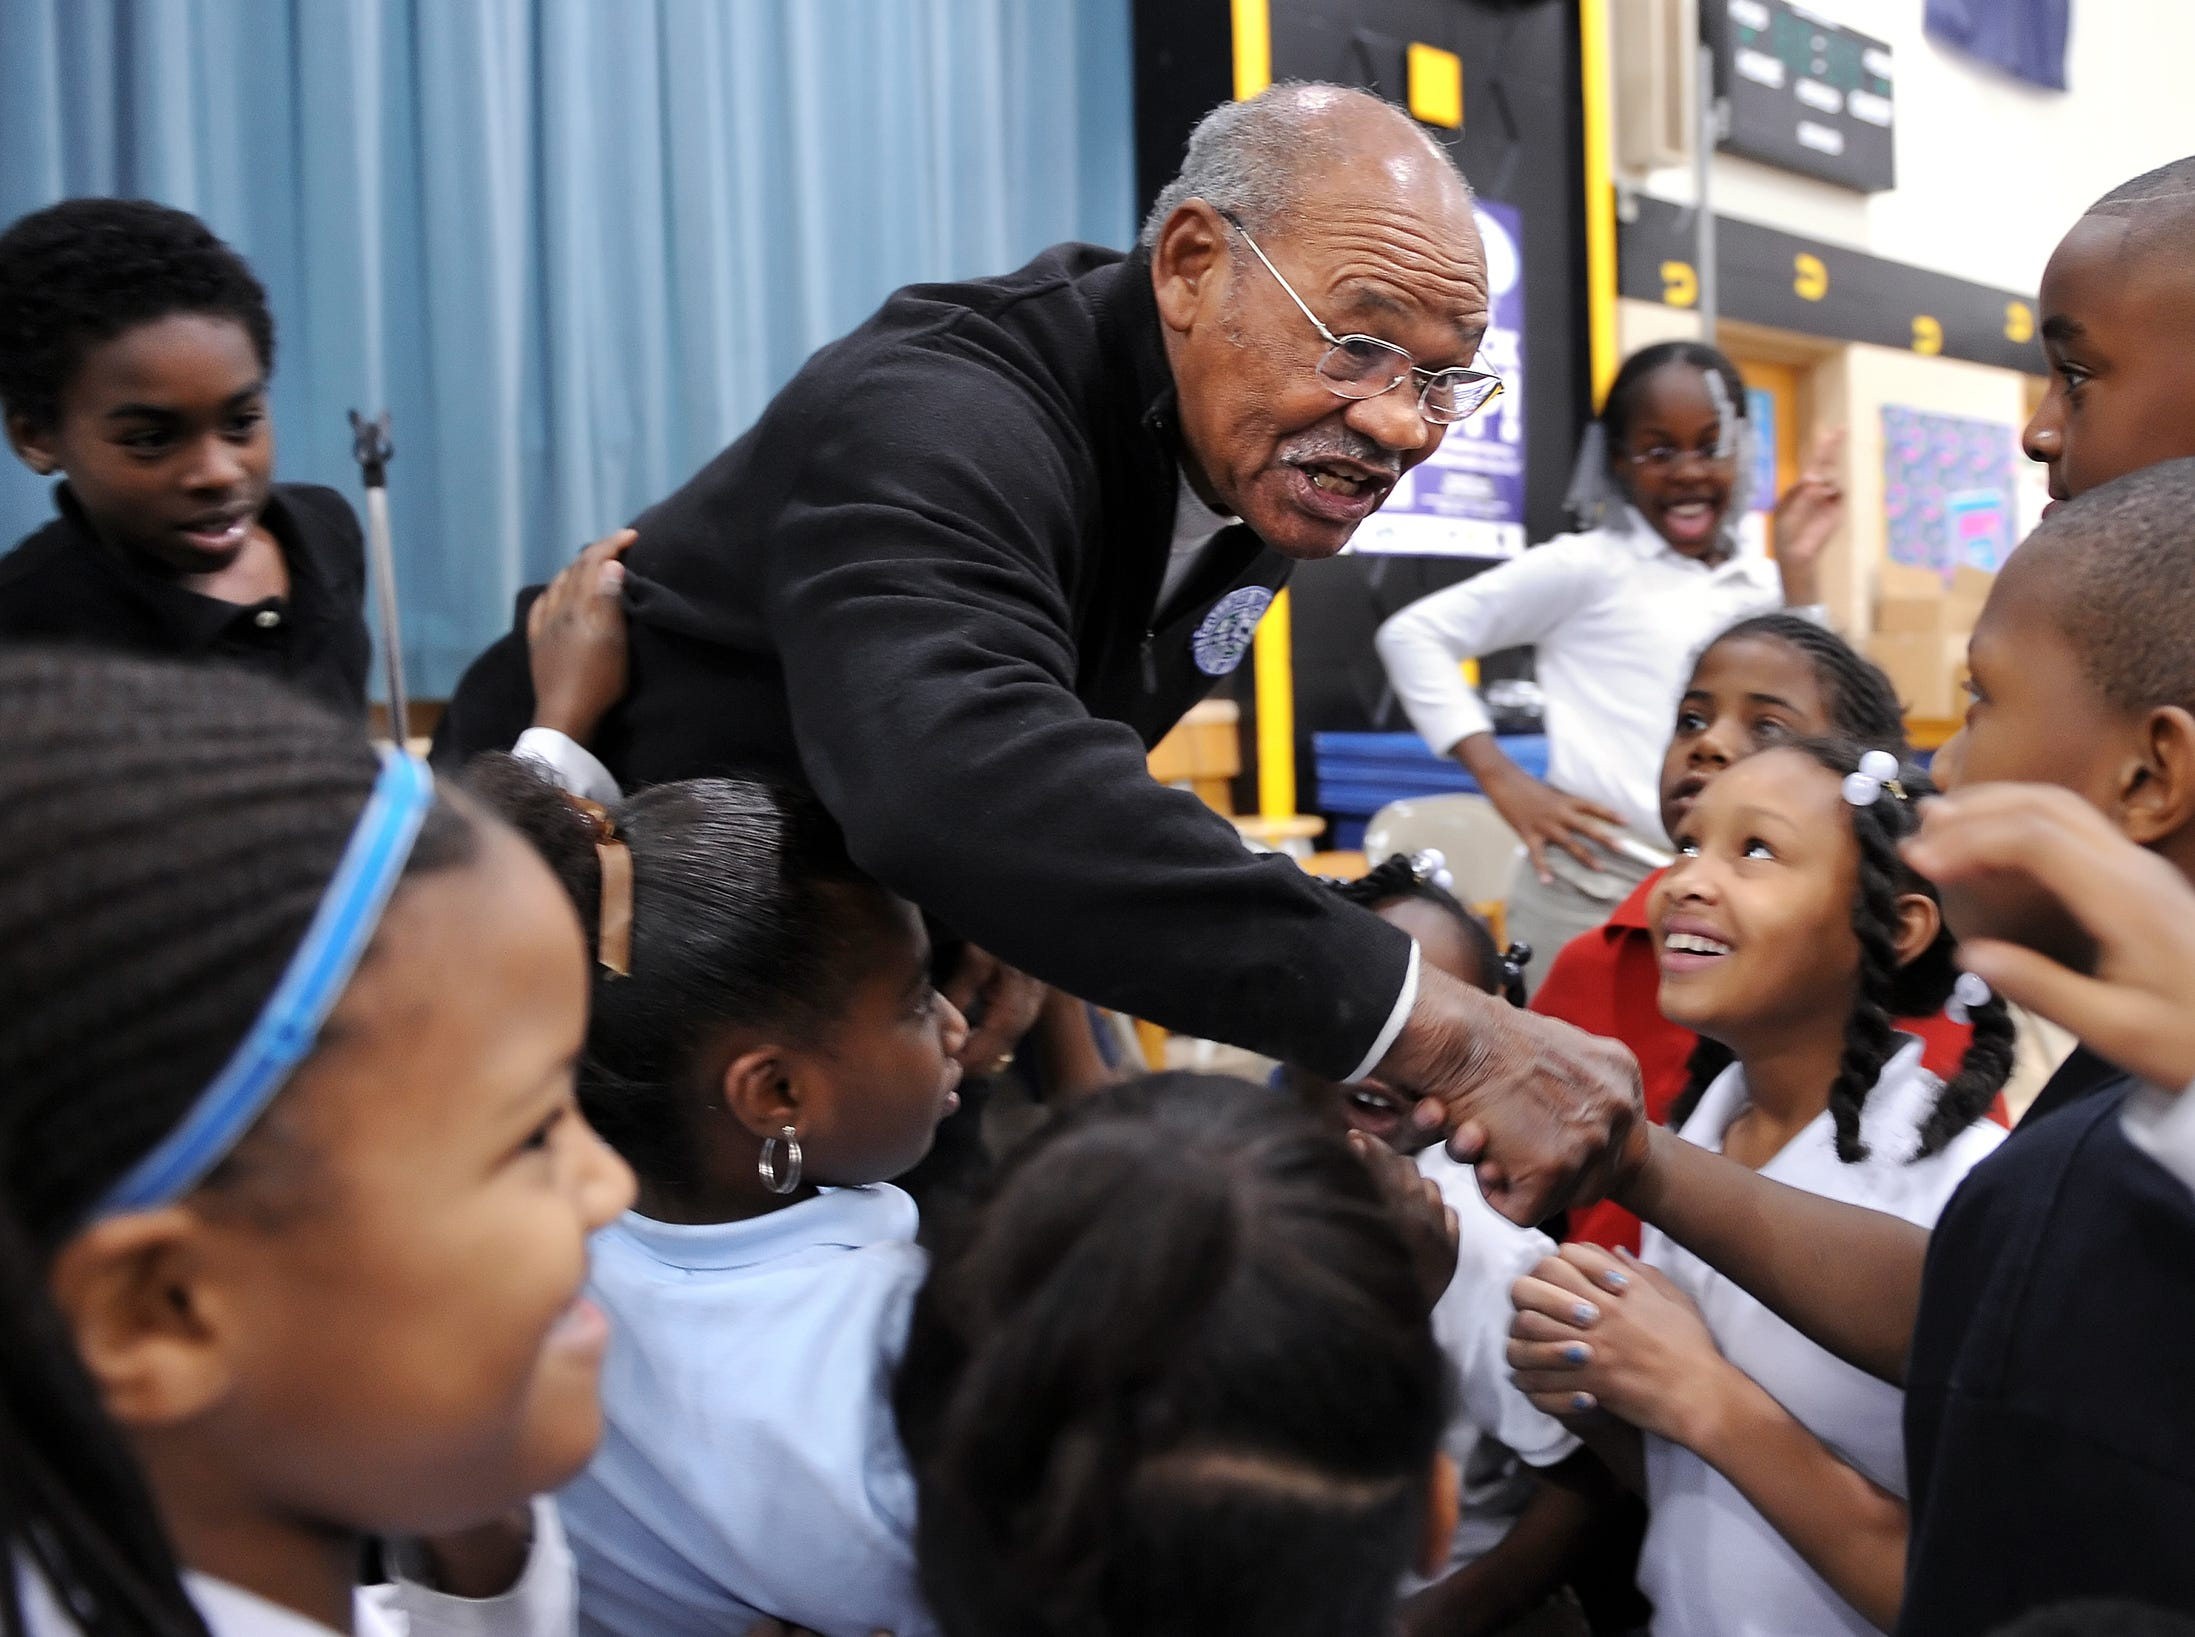 Indiana University football legend George Taliaferro, 91, who was the first African American drafted by the All-American Football Conference back in 1949, shook hands with kids after discussing his personal story of triumph with Robert Lee Frost Elementary School students on Thursday, October 30, 2008.  Taliaferro shared with students how his determination and pursuit of quality education provided the foundation for his success. Here, he talks about a drawing someone made for him back in his glory days. (Matt Detrich / The Star)